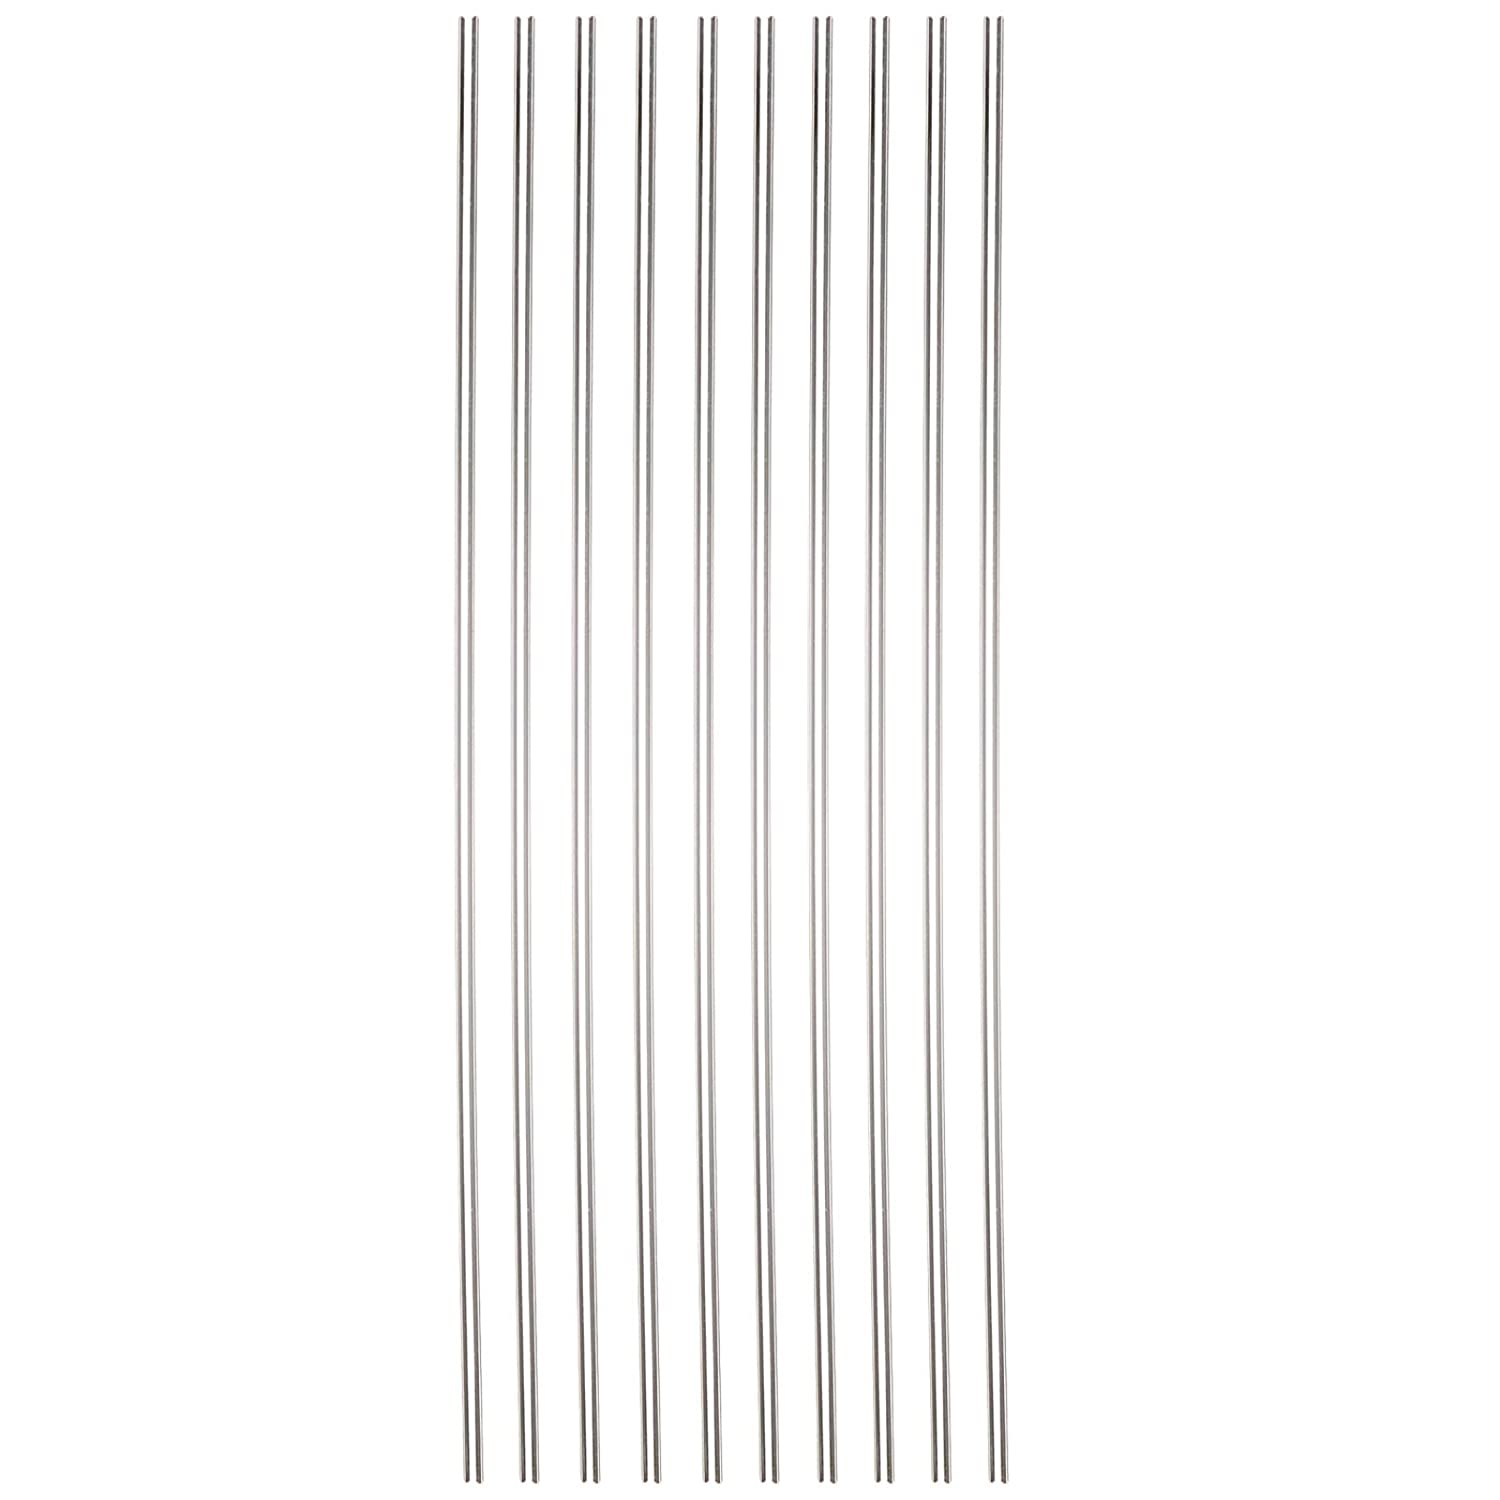 Sammons Preston 44571 Reusable Drinking Straws, Long Reusable Straws are Dishwasher Safe, Set of 10 Straws for Wine Bottles, Tall Cups, Large Glasses, & Thin Liquids, 1/8